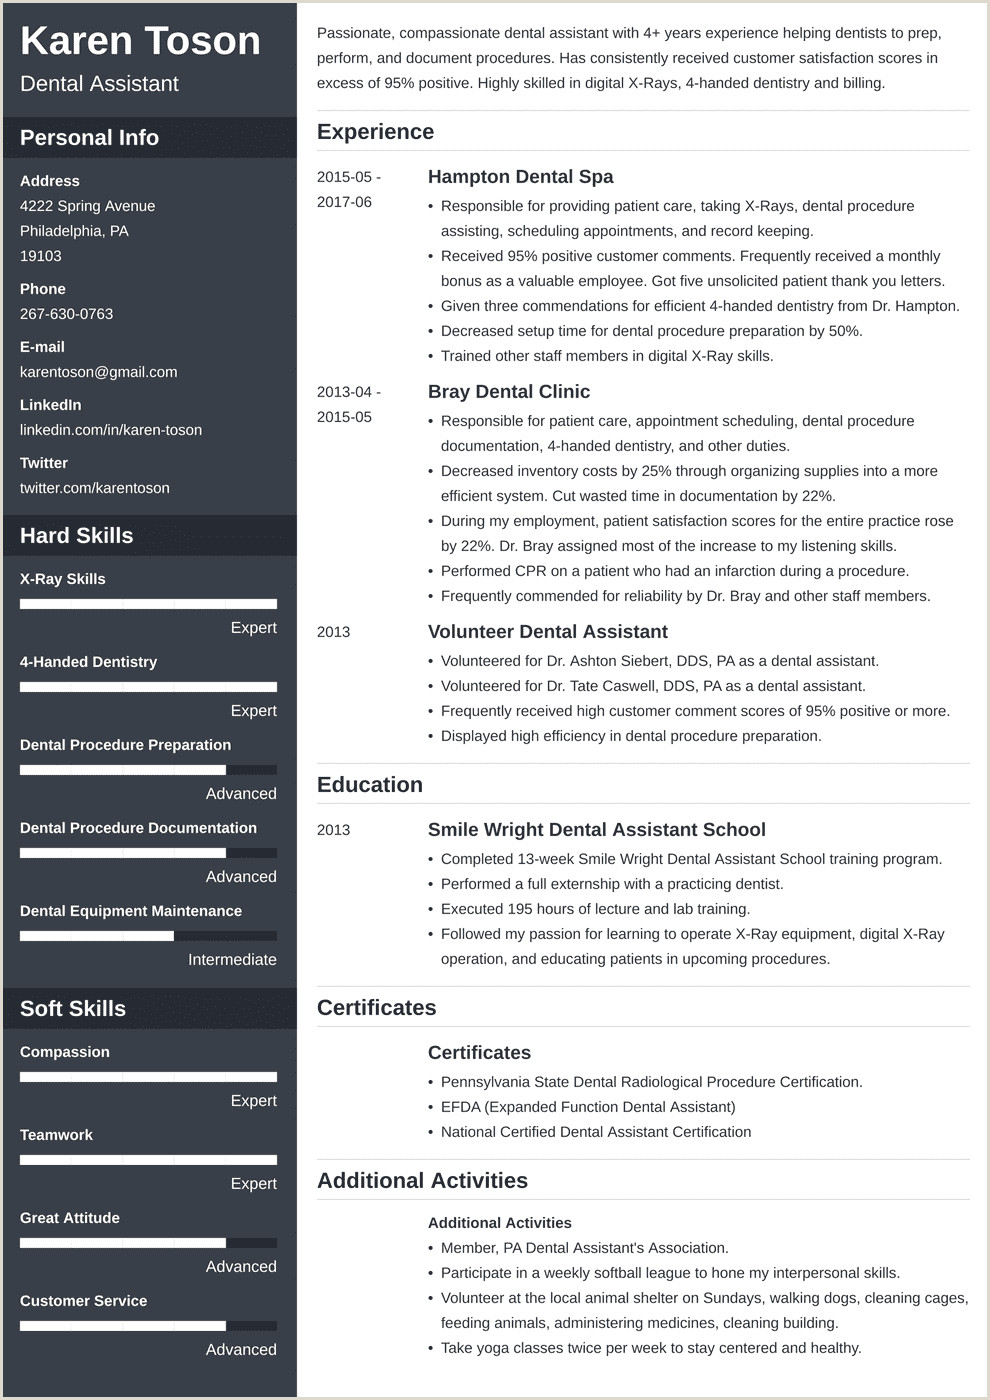 Dental assistant Resume Objective 88 Dental assistant Resume Template Dental assistant